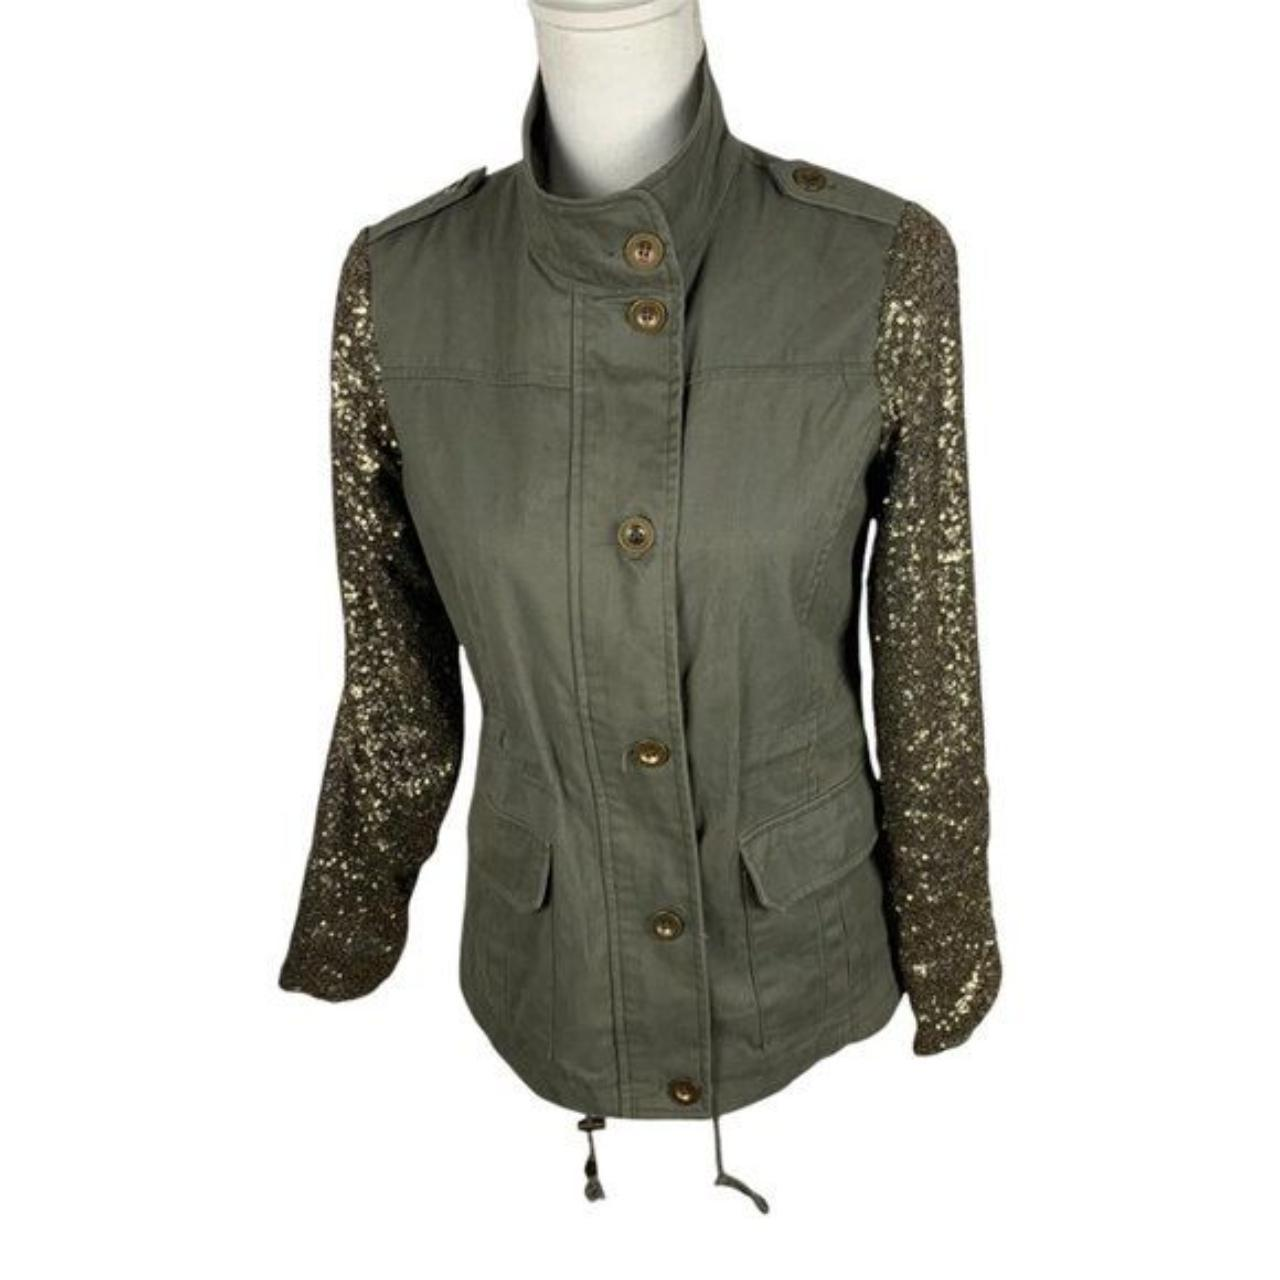 Product Image 1 - DEB Women's Button Down Jacket Size